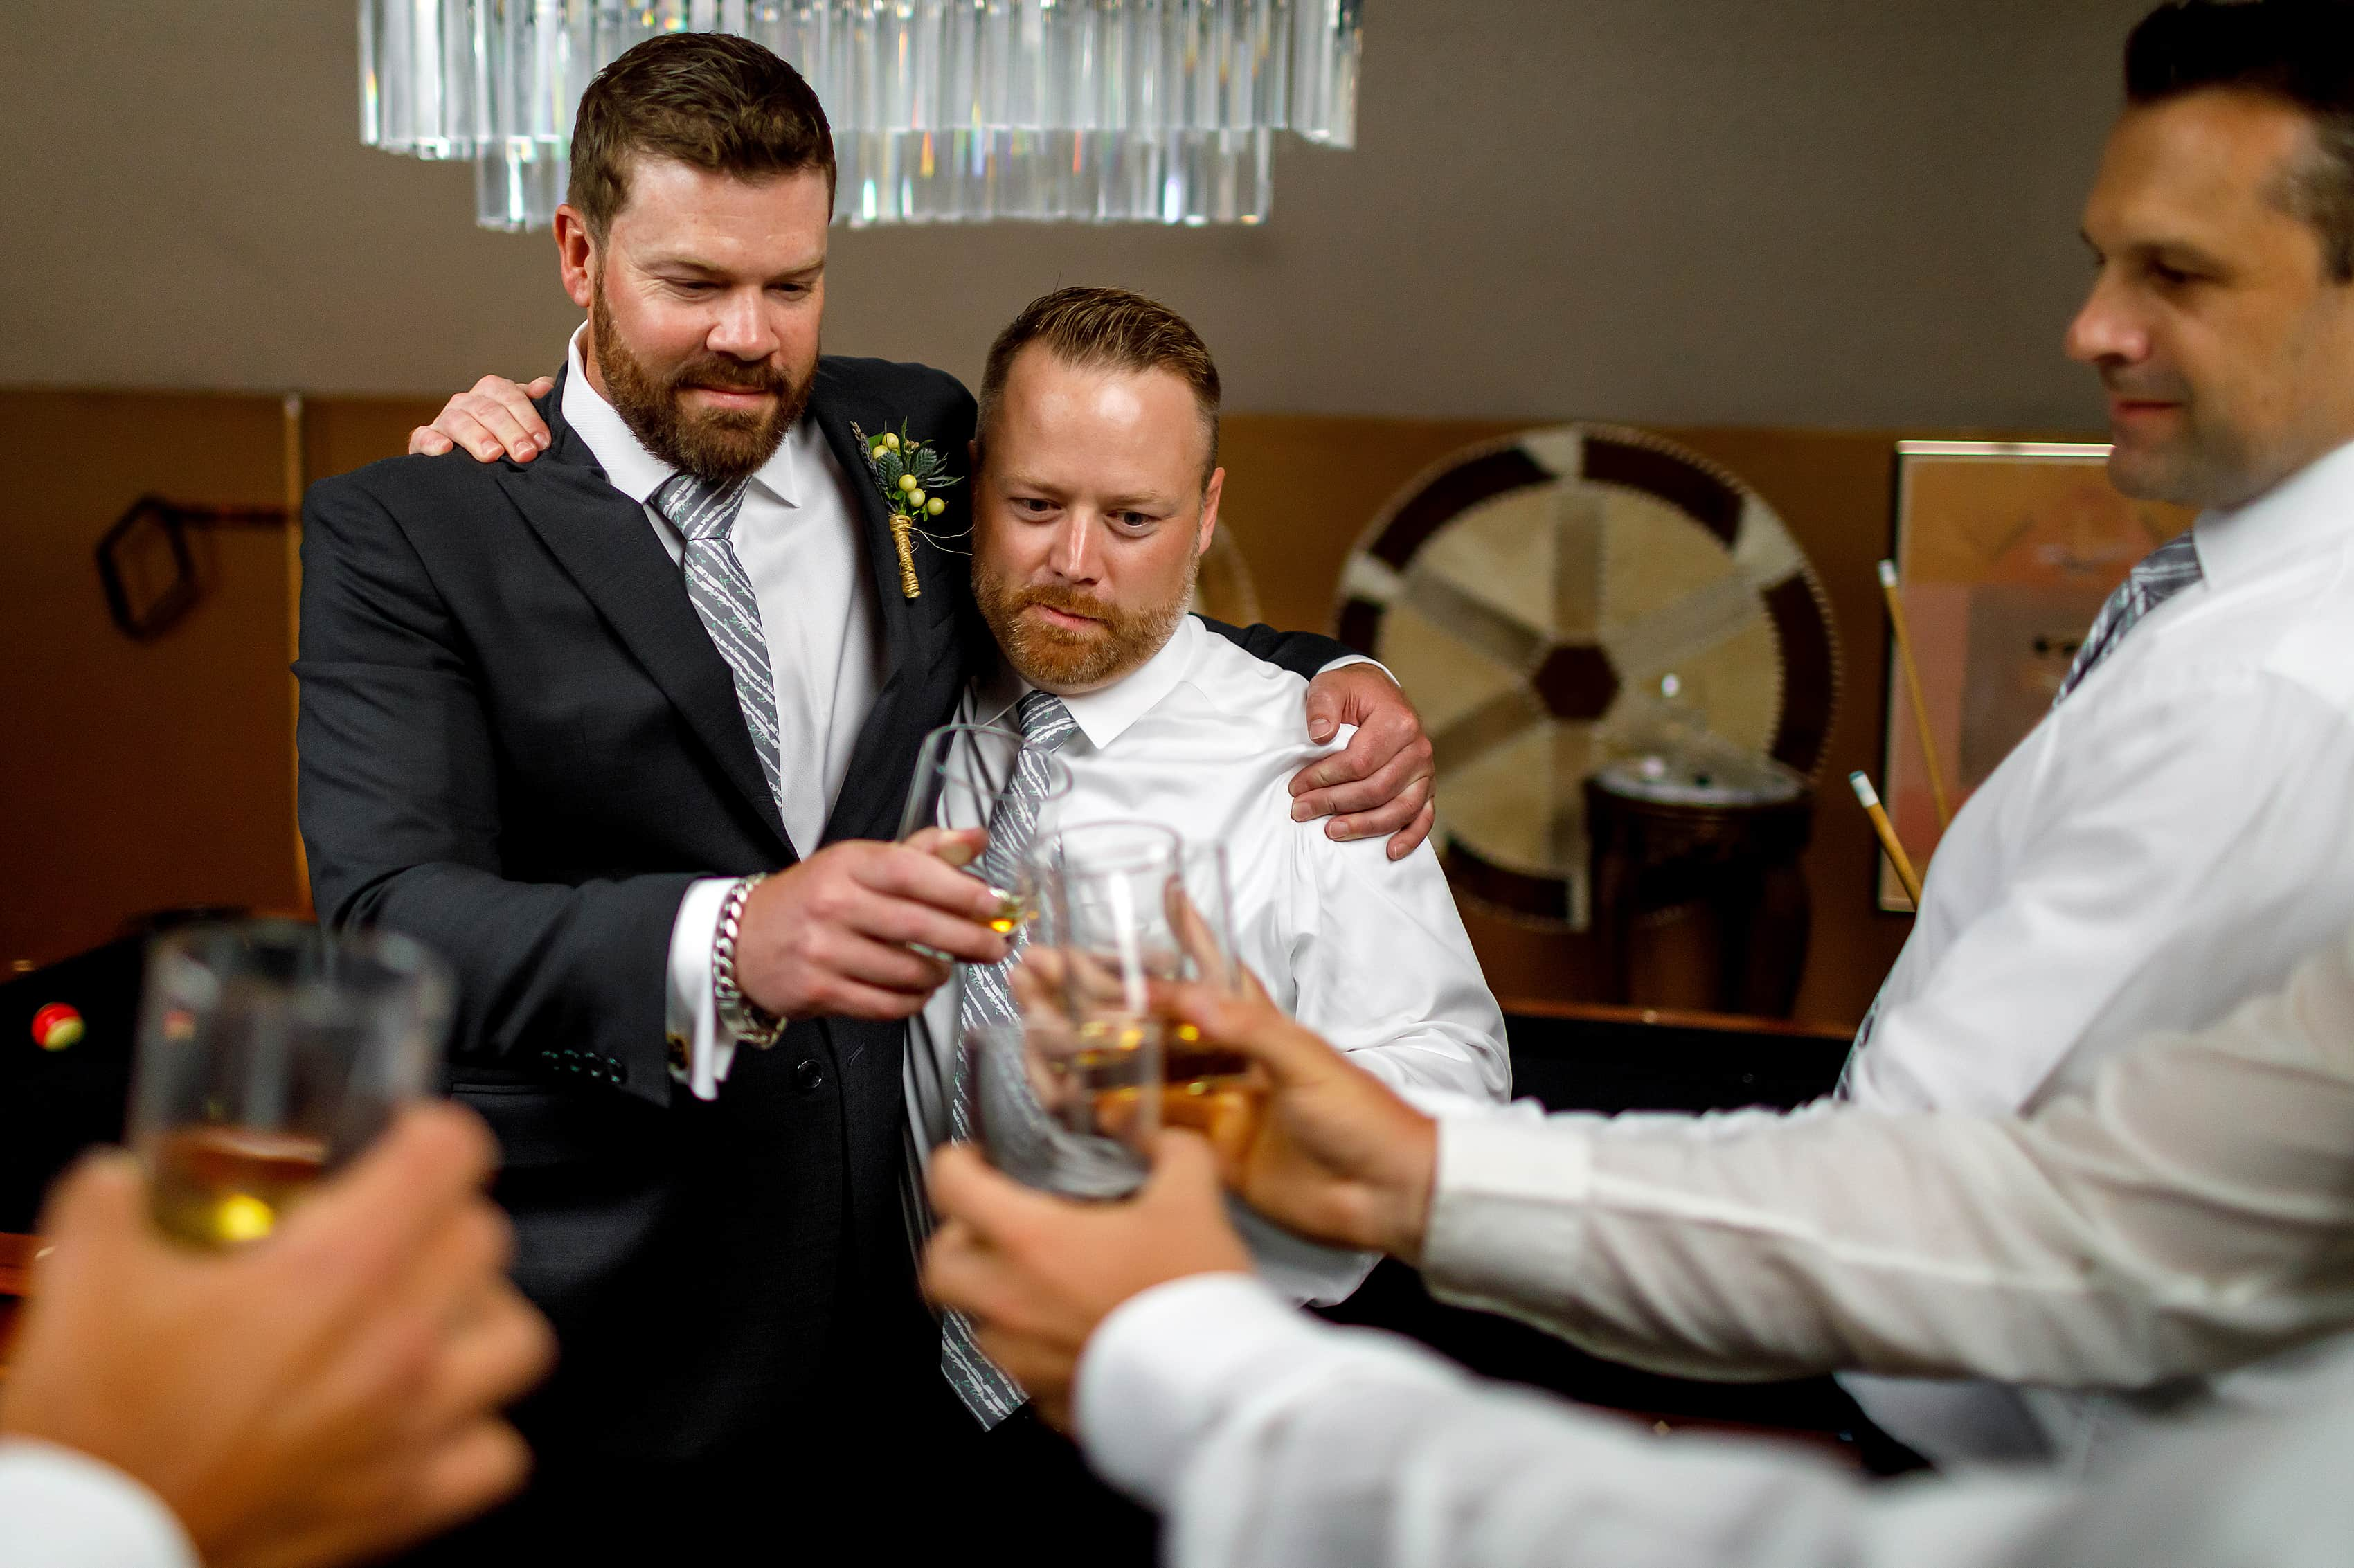 groom and groomsmen share a toast before wedding at Lionsgate Event Center